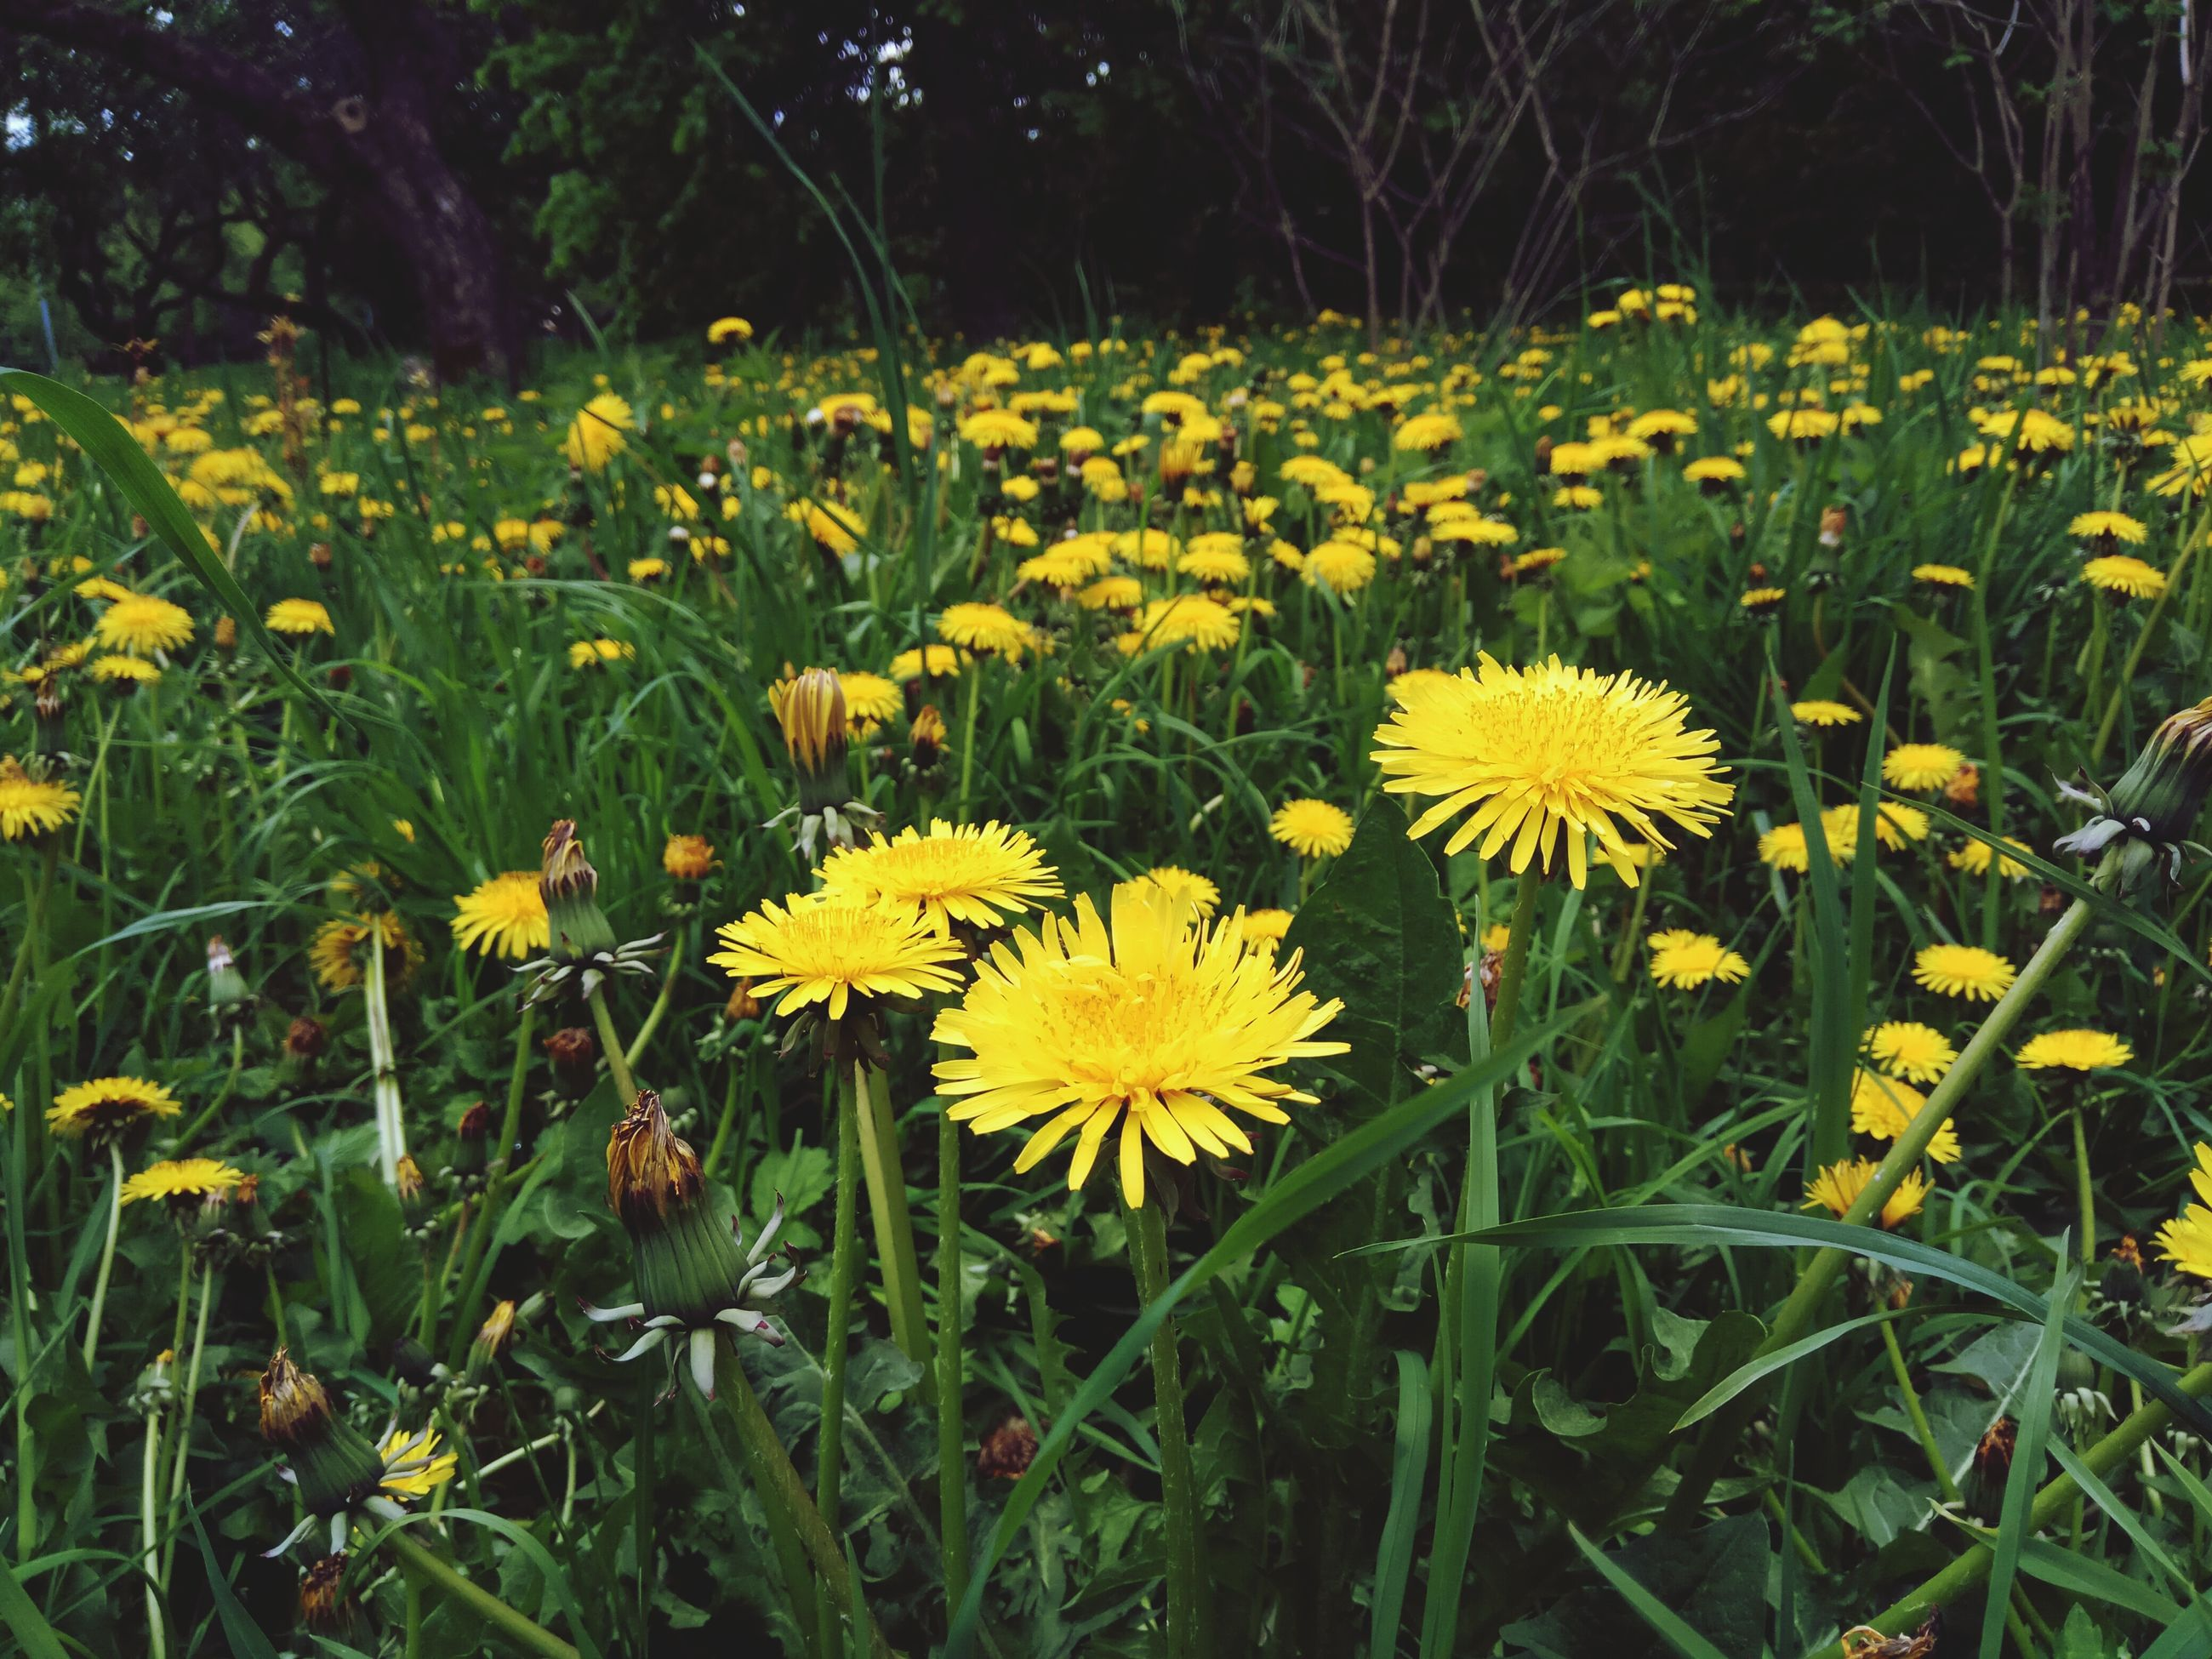 flower, yellow, growth, nature, beauty in nature, field, freshness, fragility, petal, plant, outdoors, grass, no people, day, meadow, flower head, blooming, tranquility, springtime, close-up